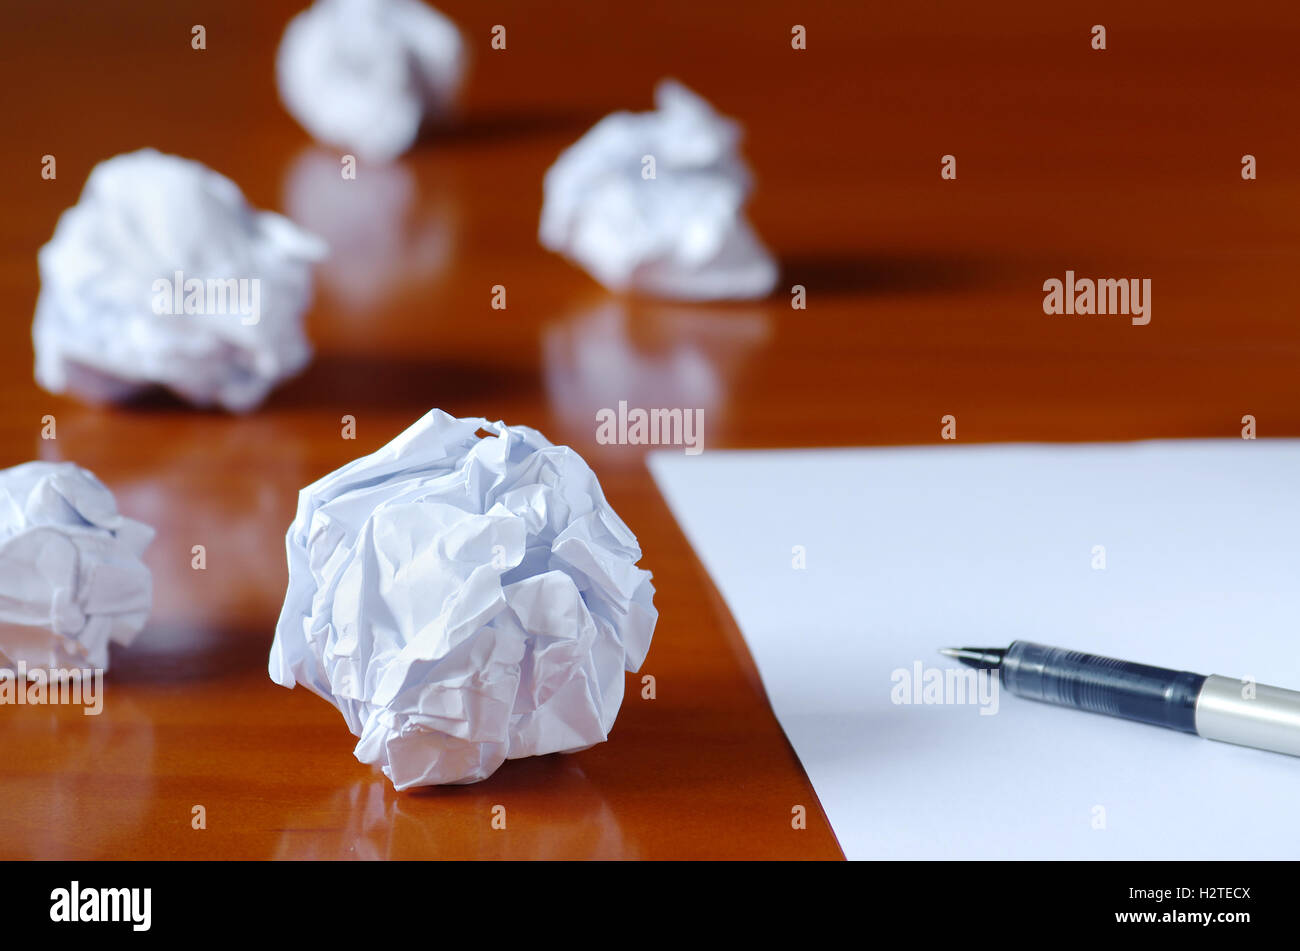 Paper balls and pen over blank white sheet - Creativity crisis concept - Stock Image